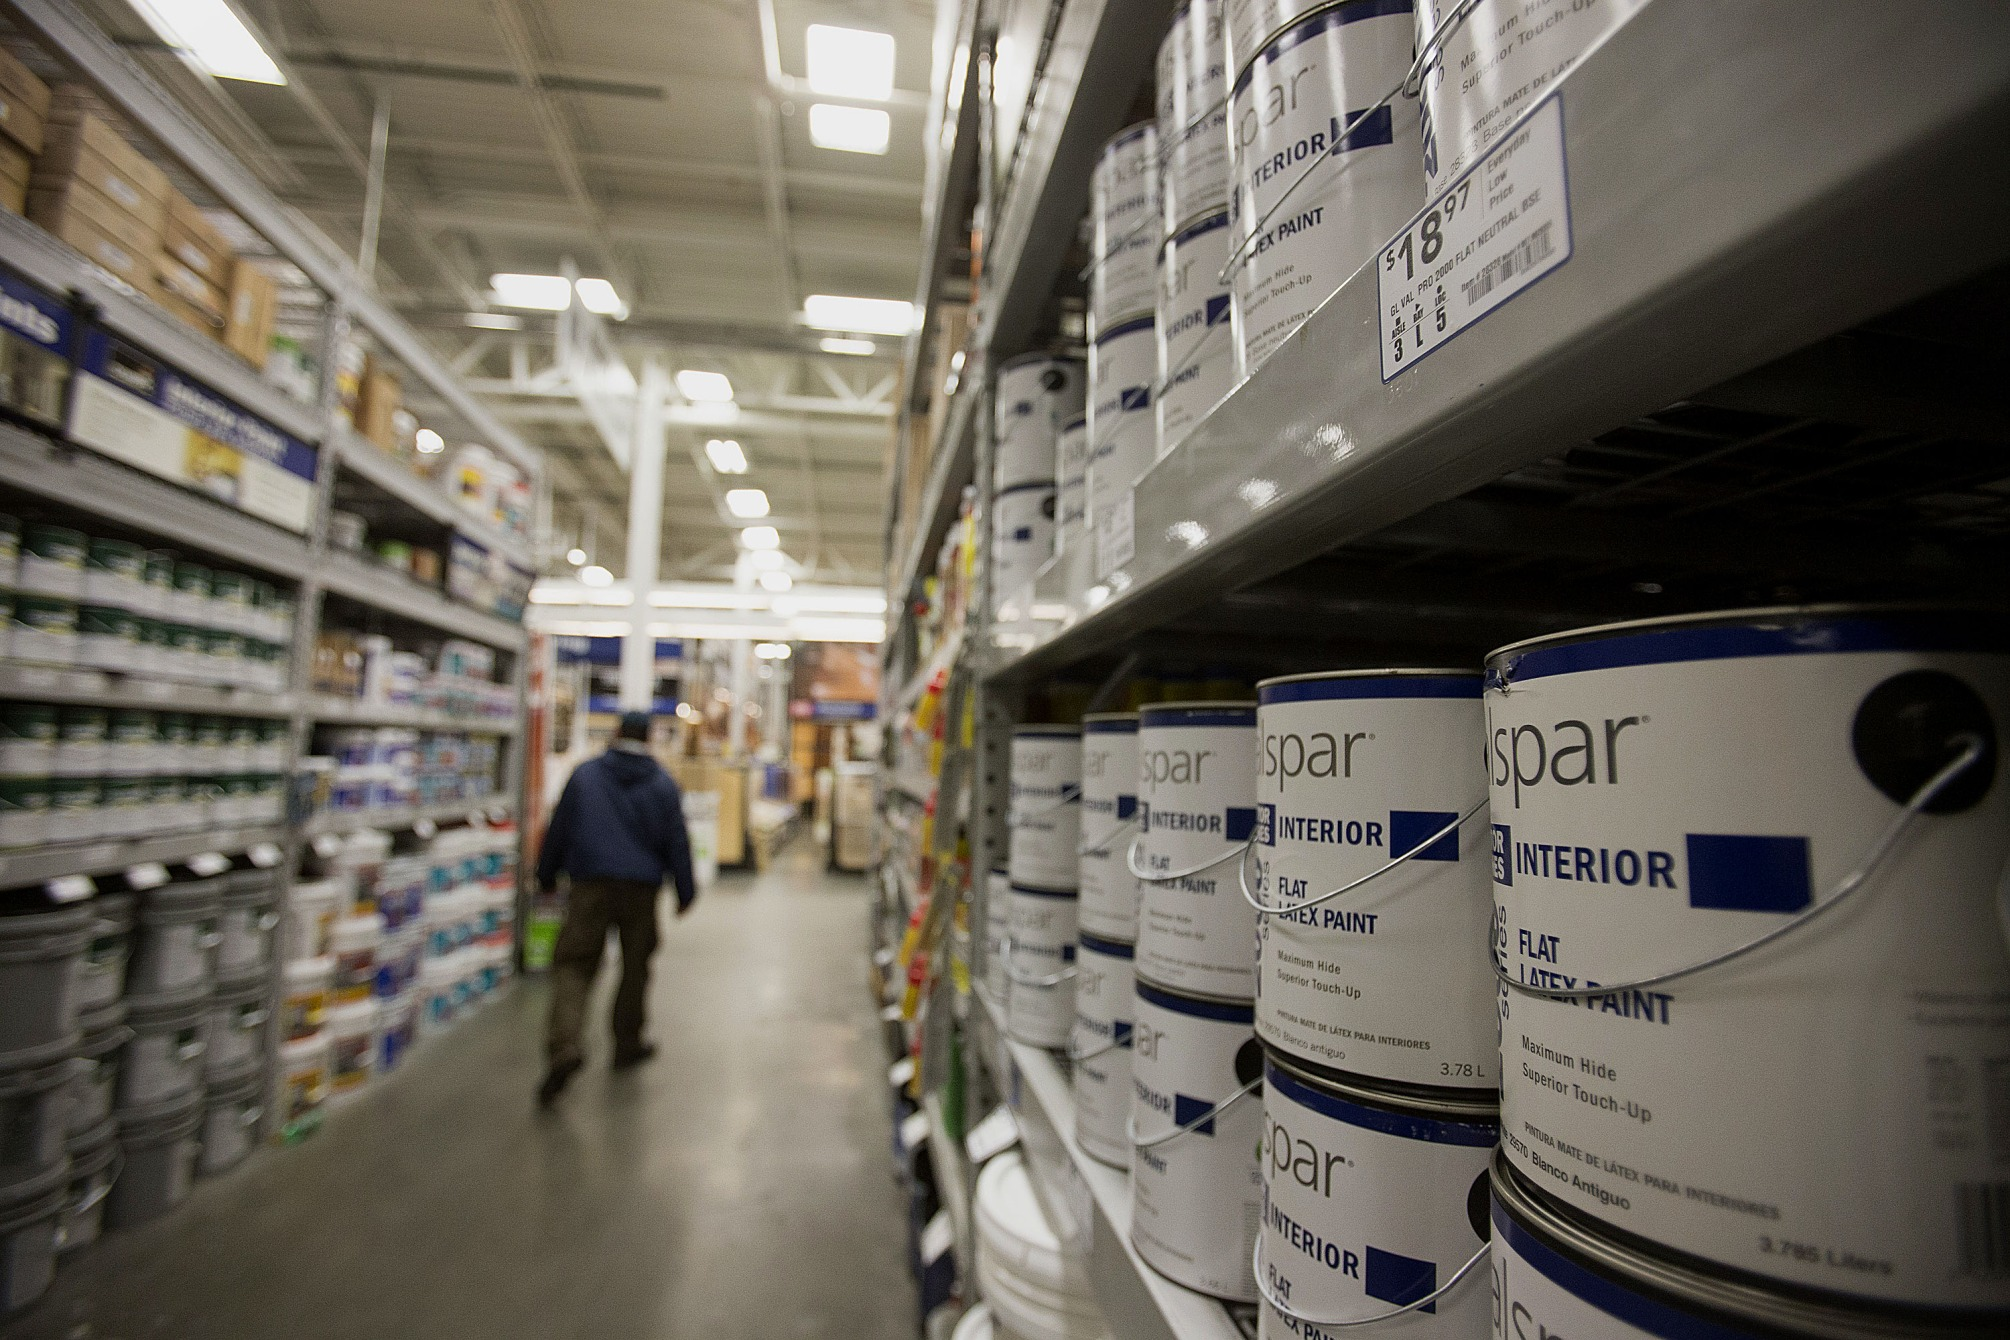 Lowes Stock Quote Lowe's Activist Believes Stock Value Could Triple  Bloomberg